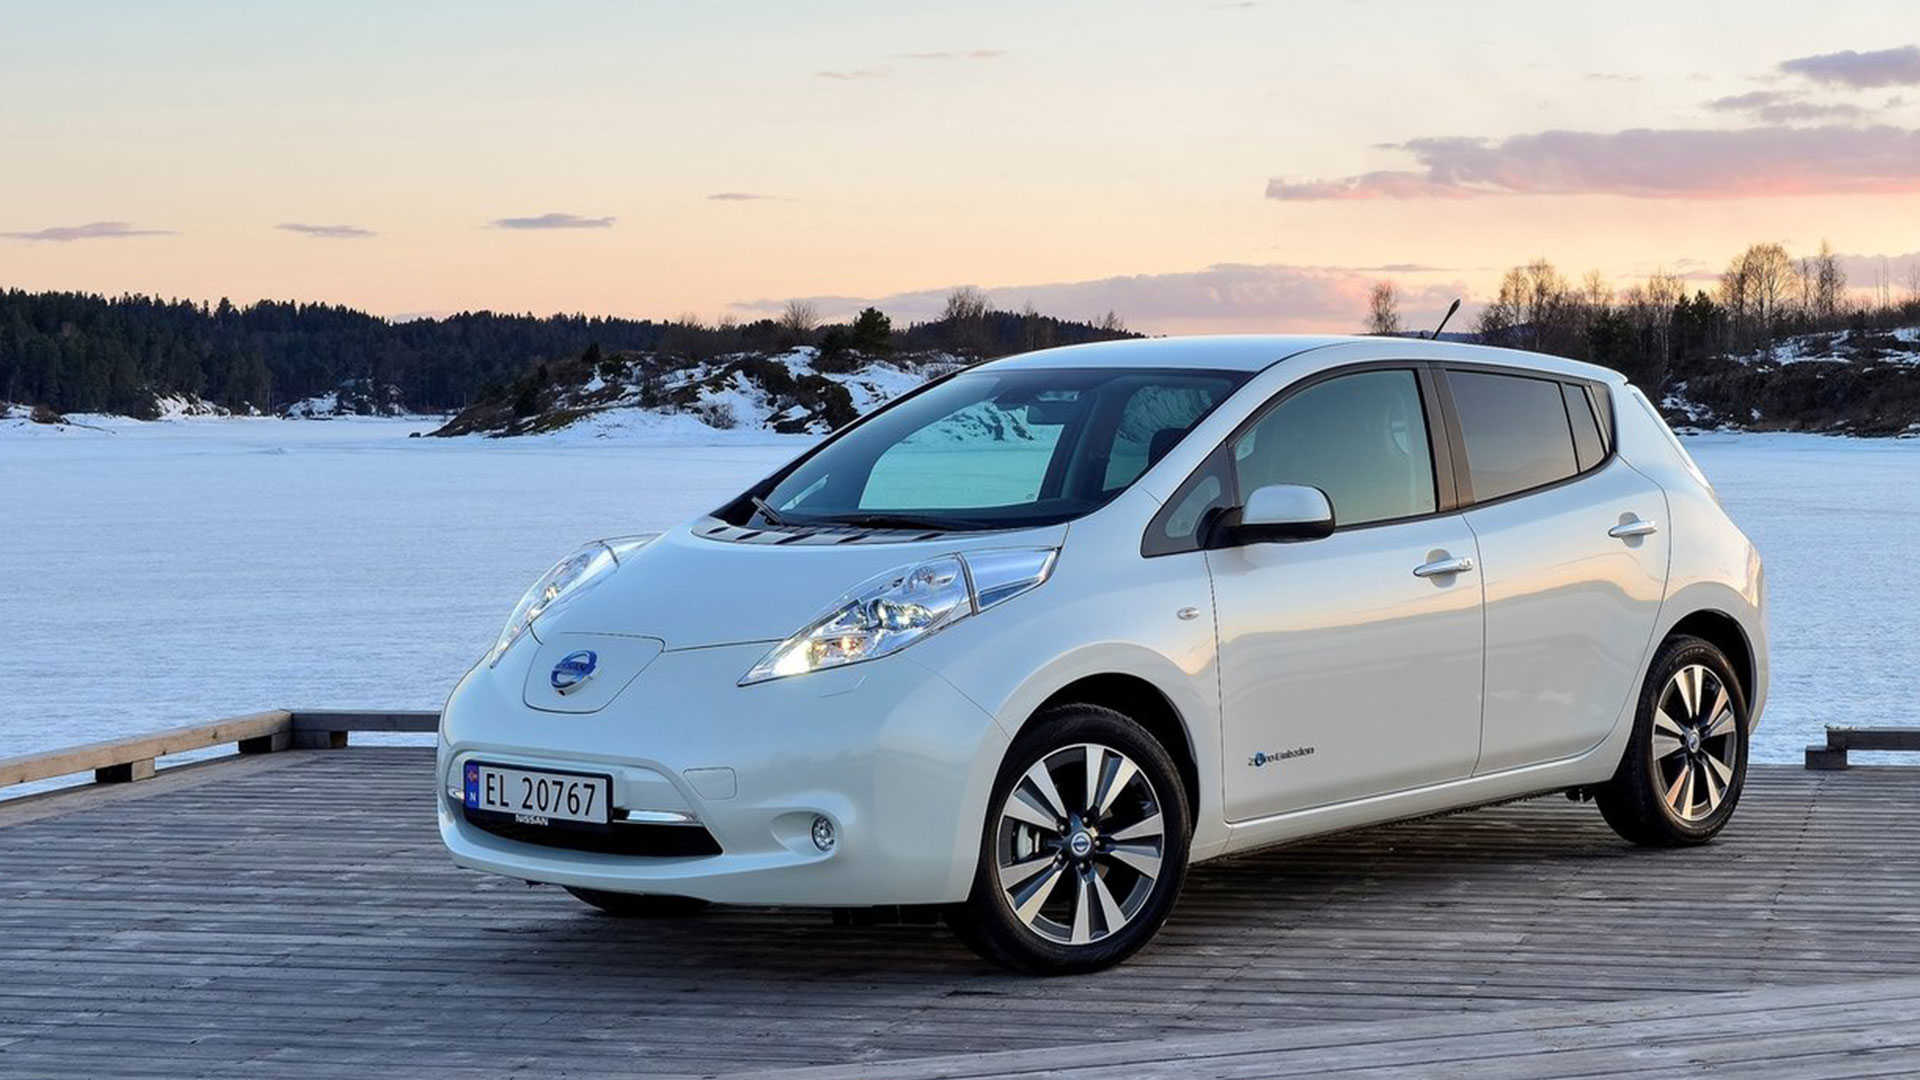 greg car transit pass future of leaf the nissan electric